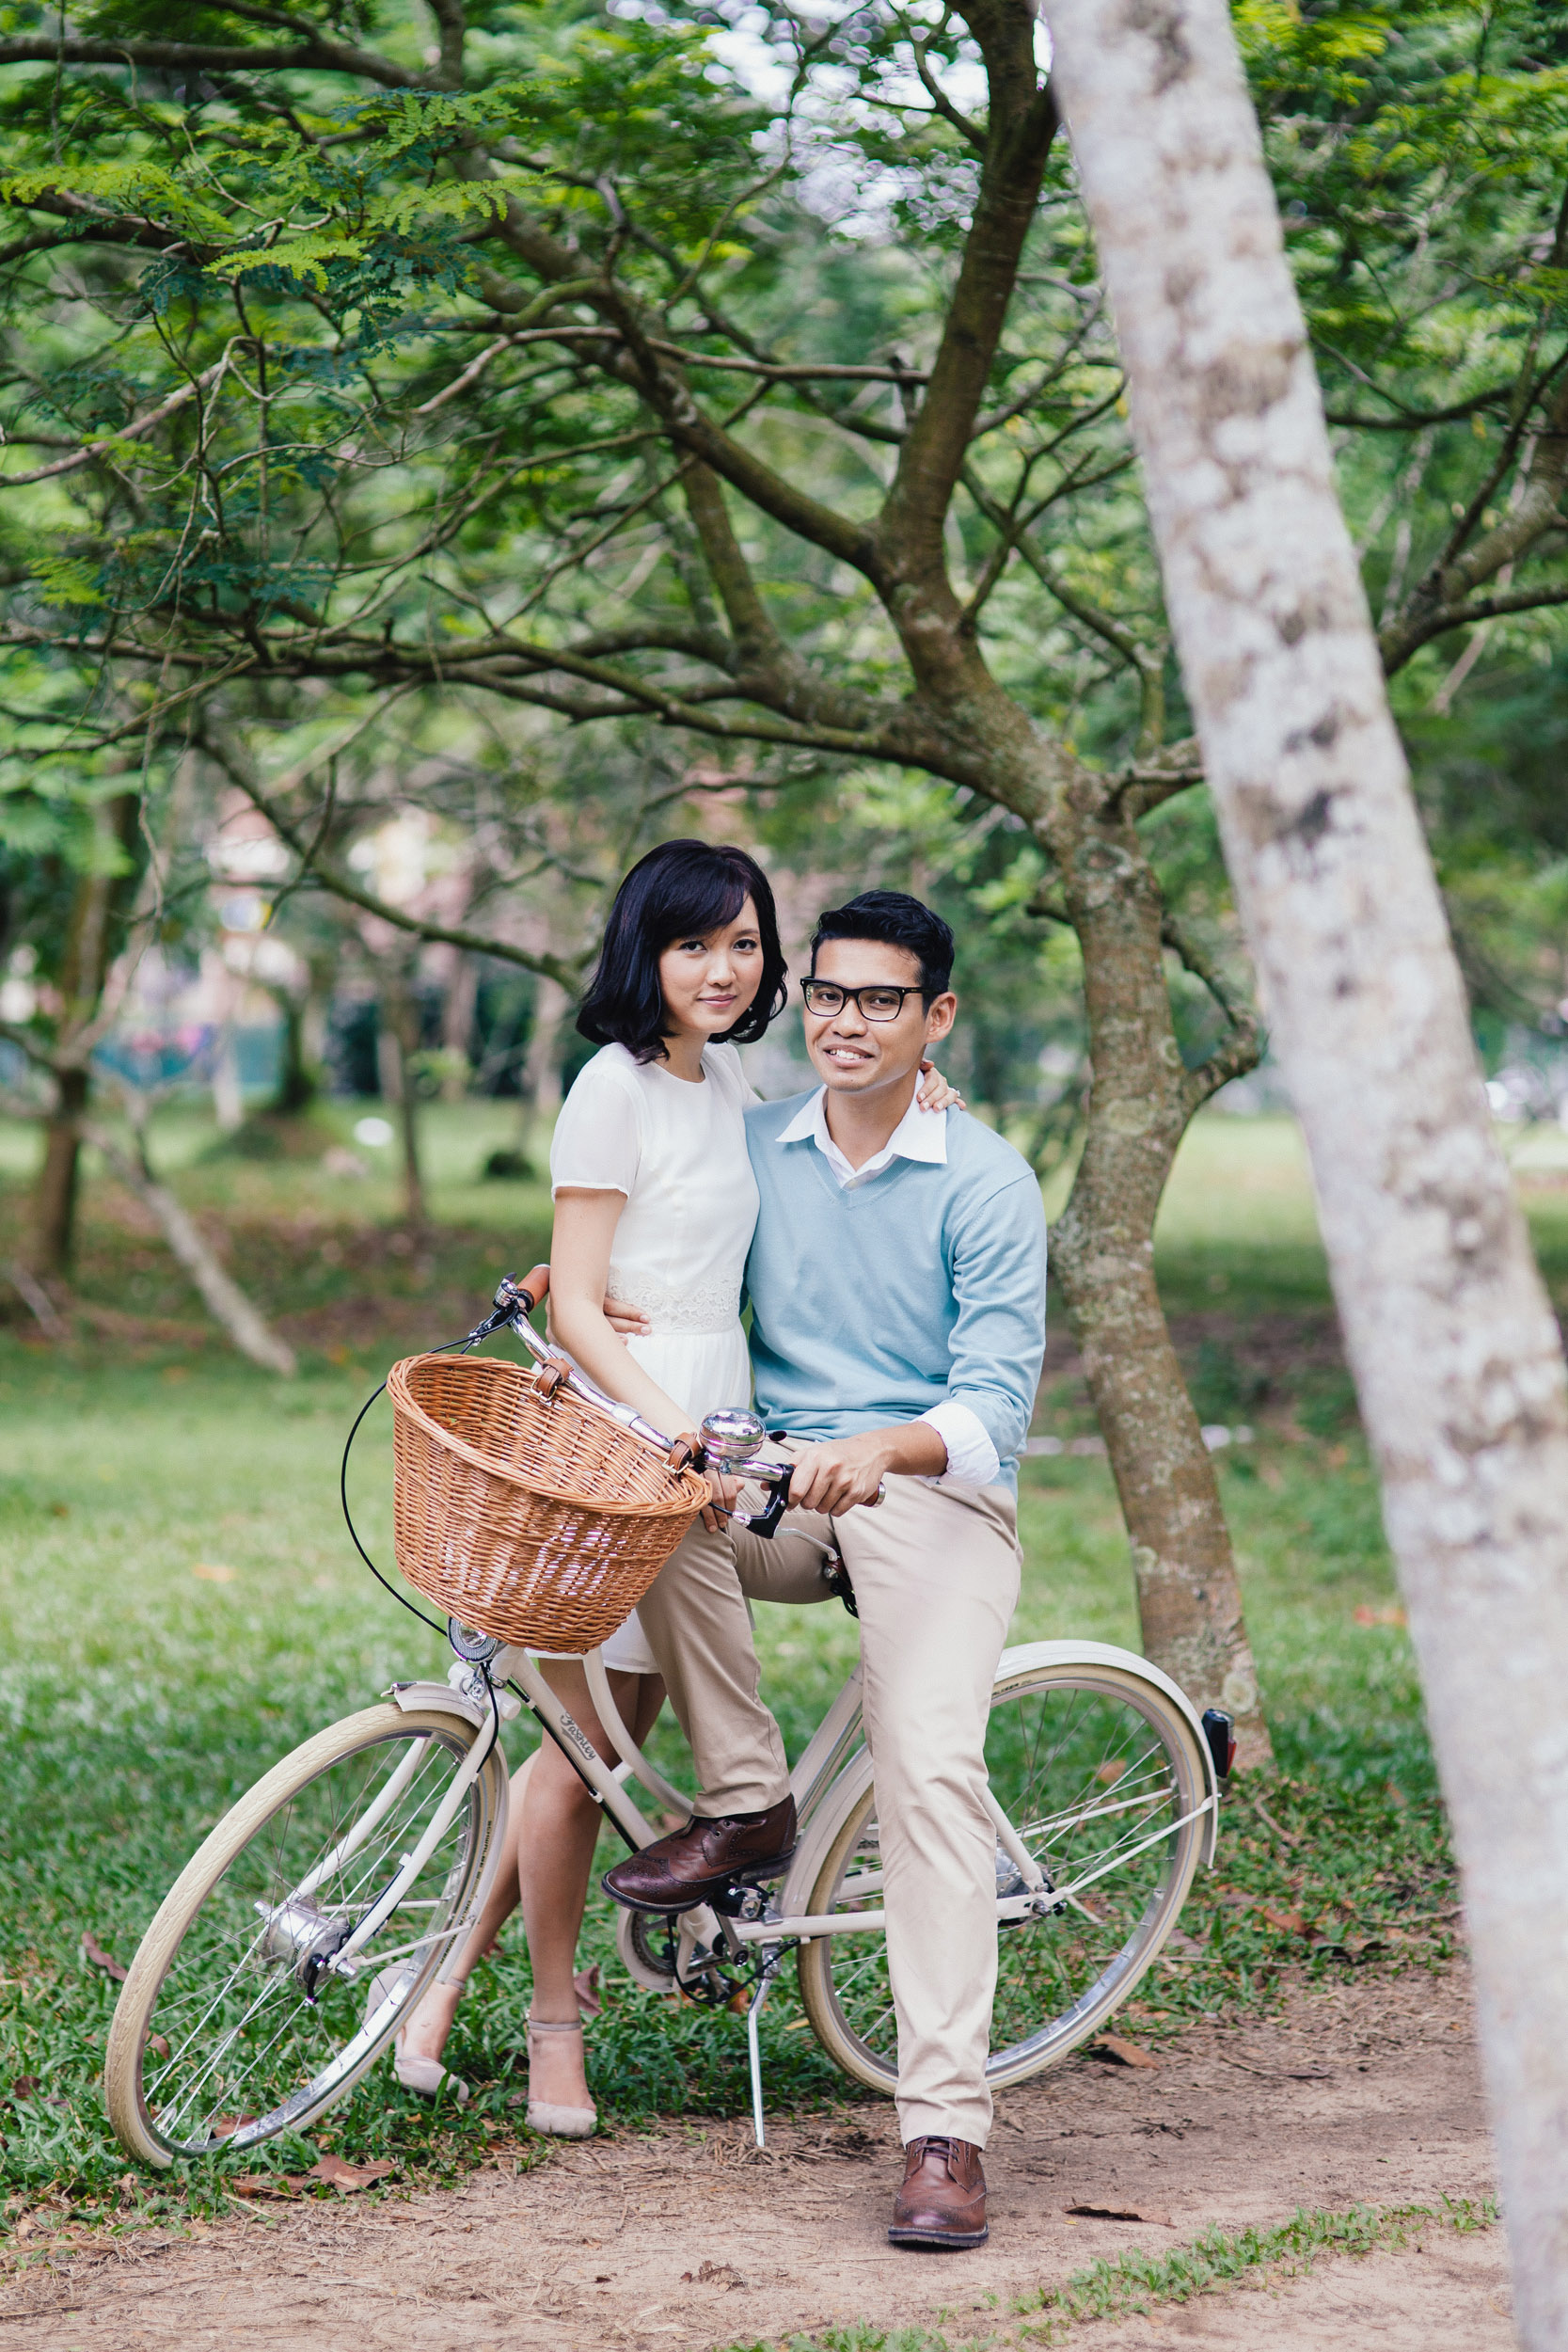 singapore-wedding-photographer-wemadethese-adib-mizah-2012-sessions-012.jpg